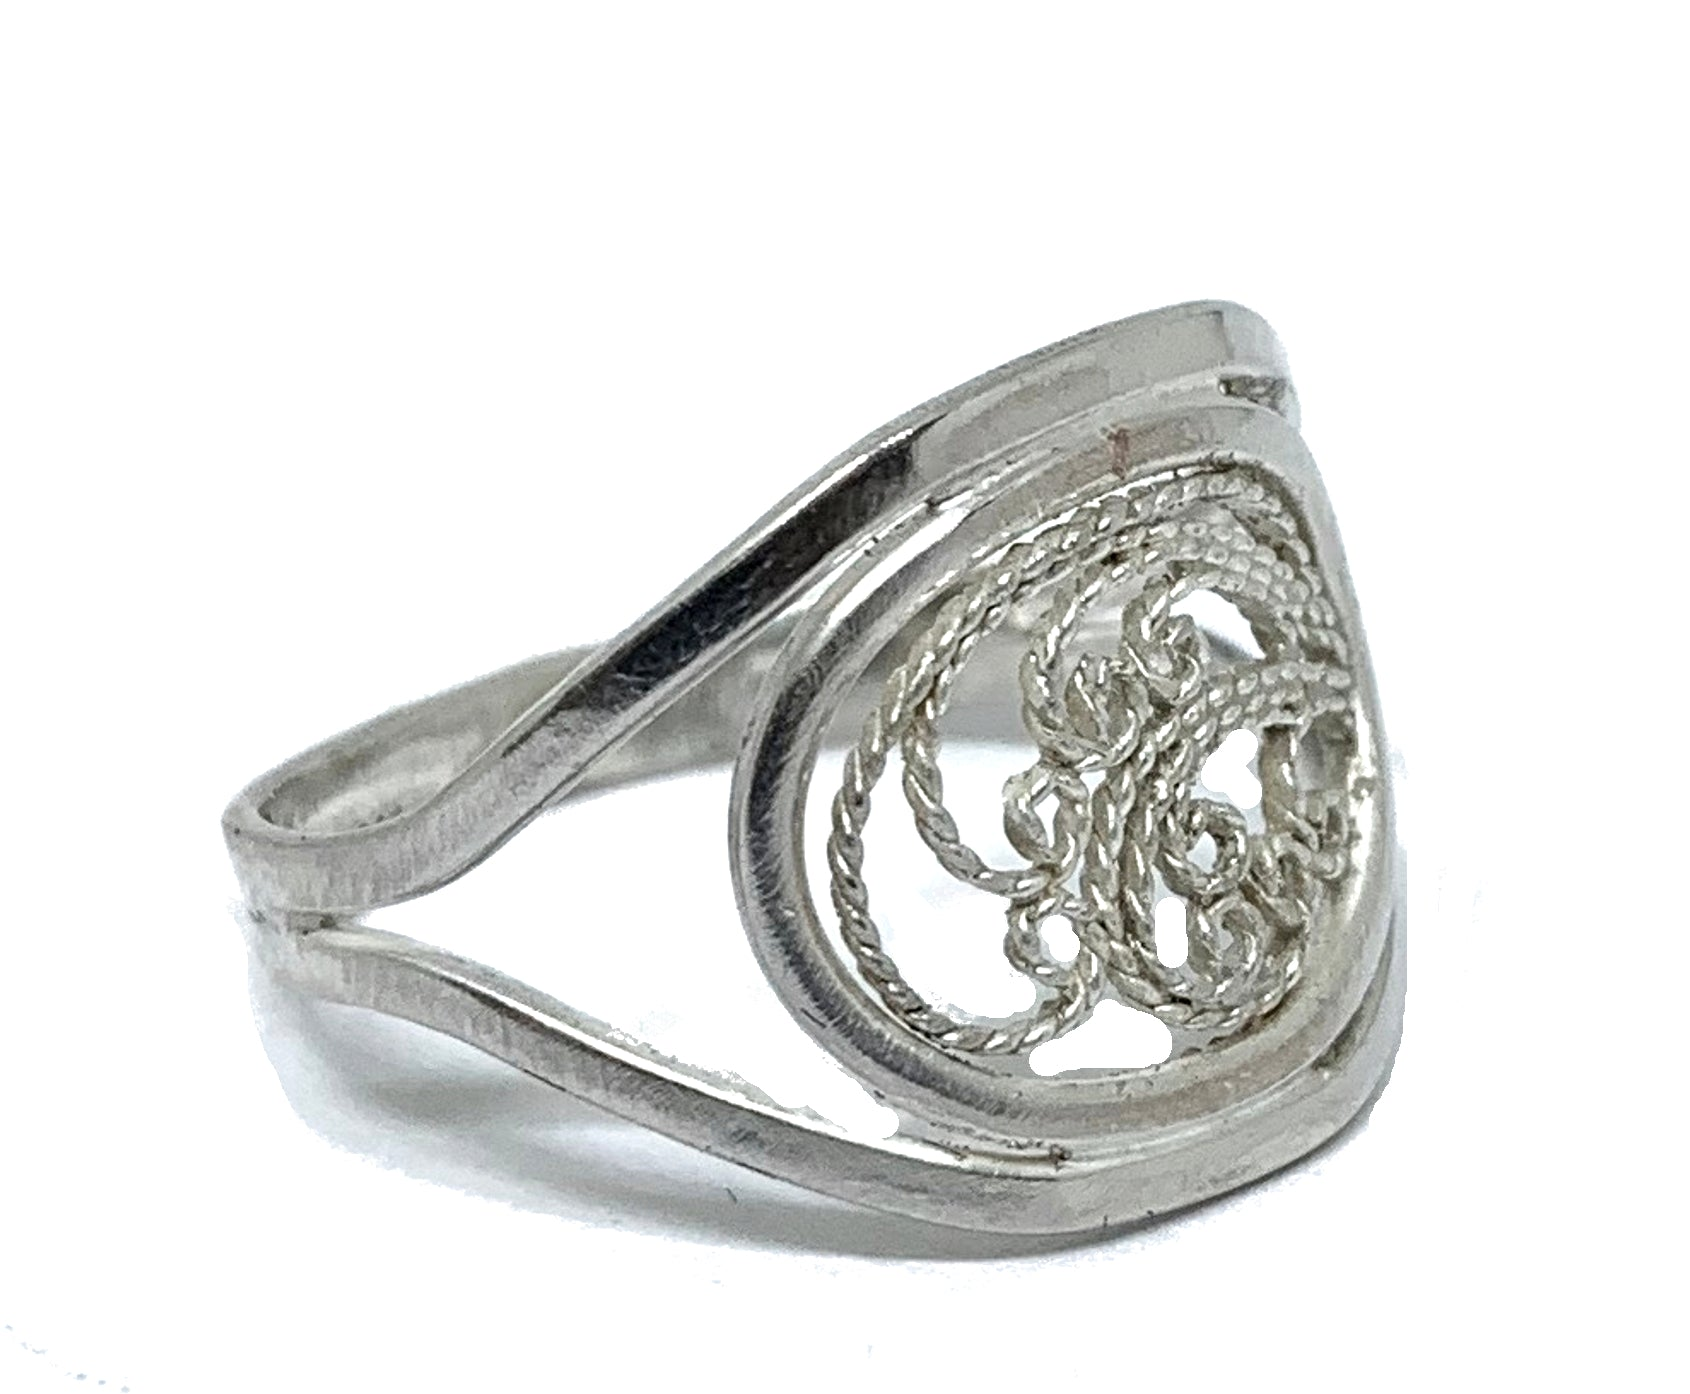 handmade silver filigree ring size 8.5